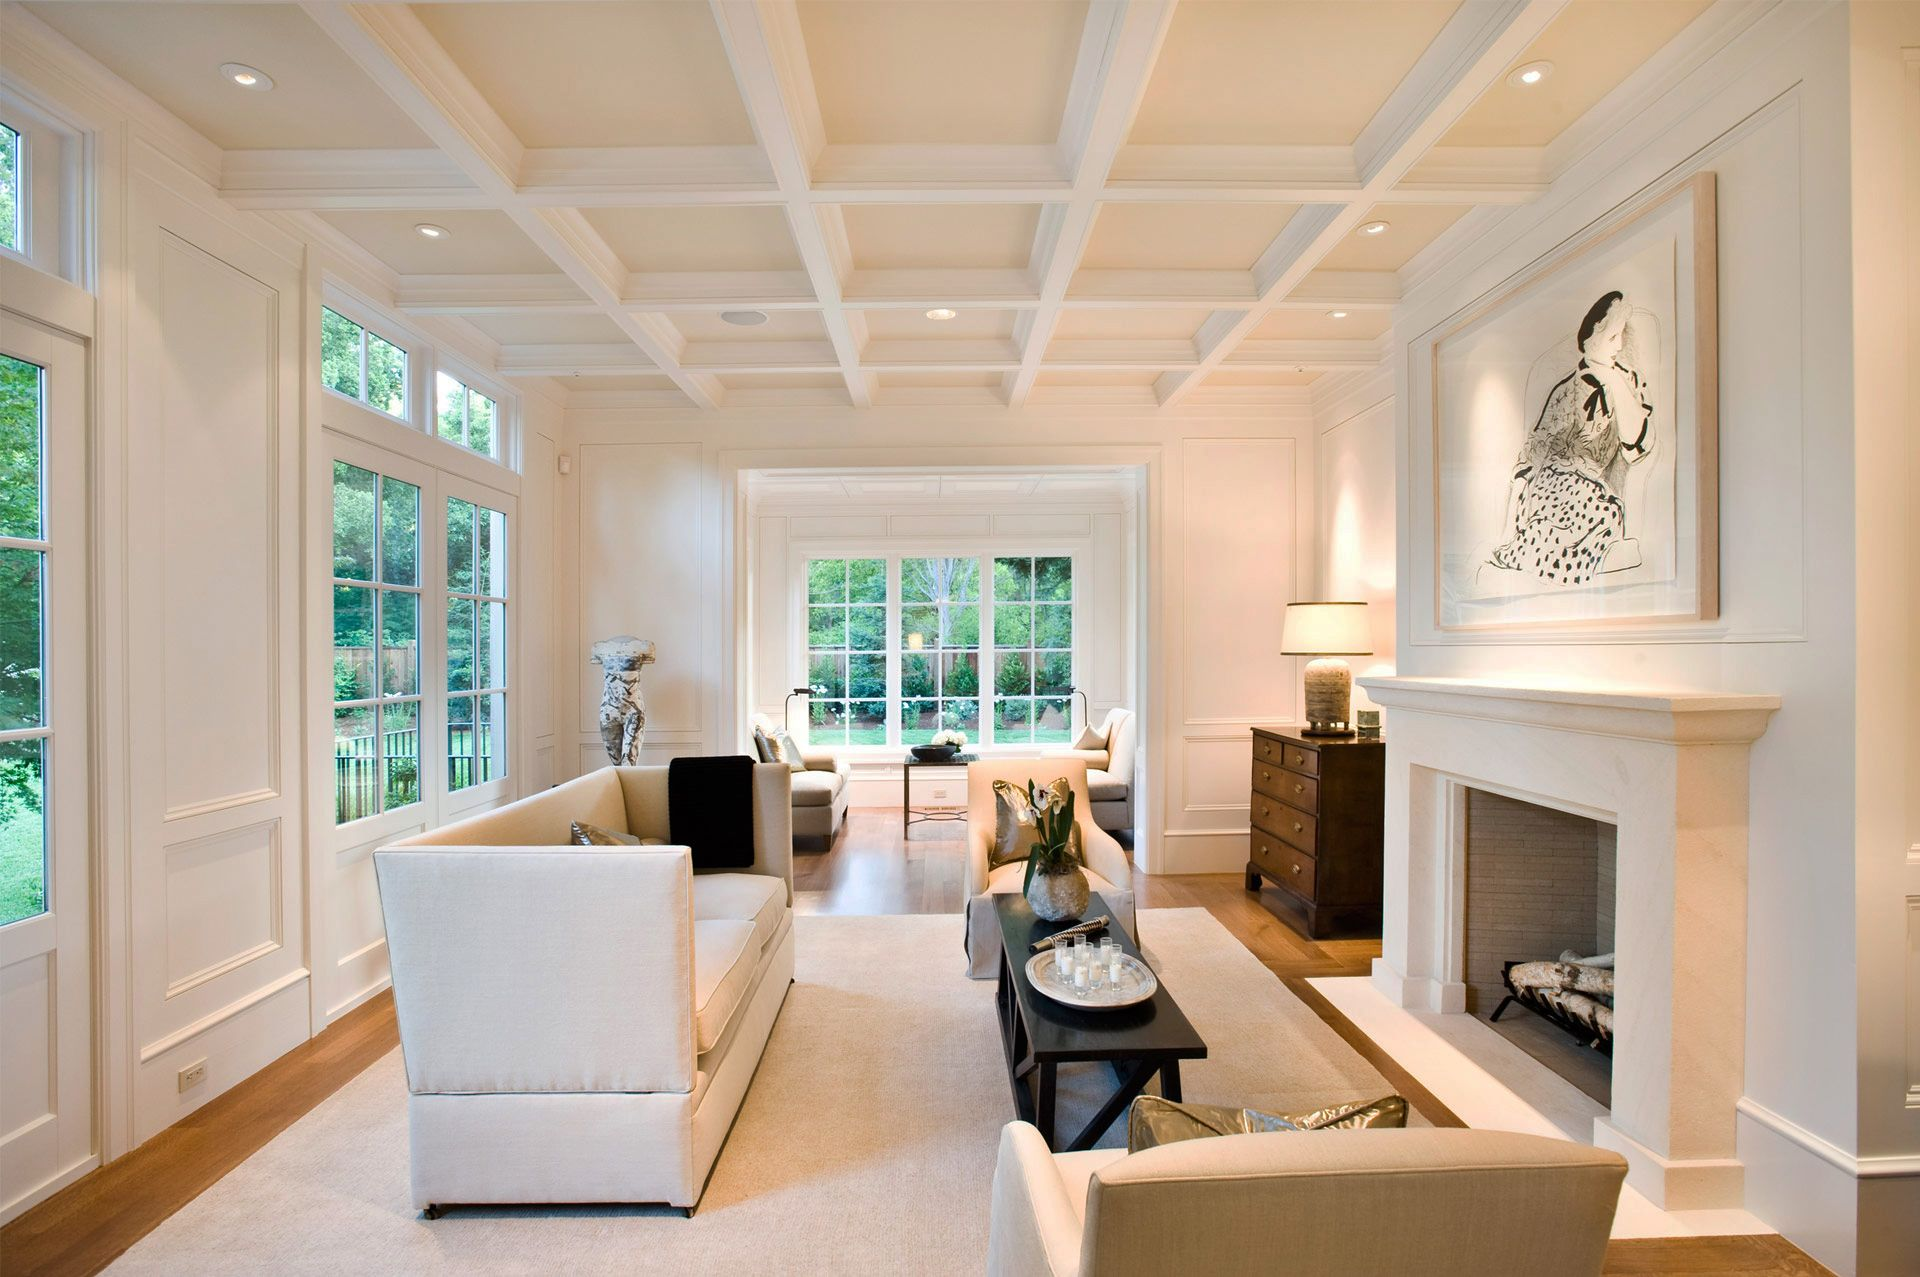 Like the coffered ceiling with lights, speakers